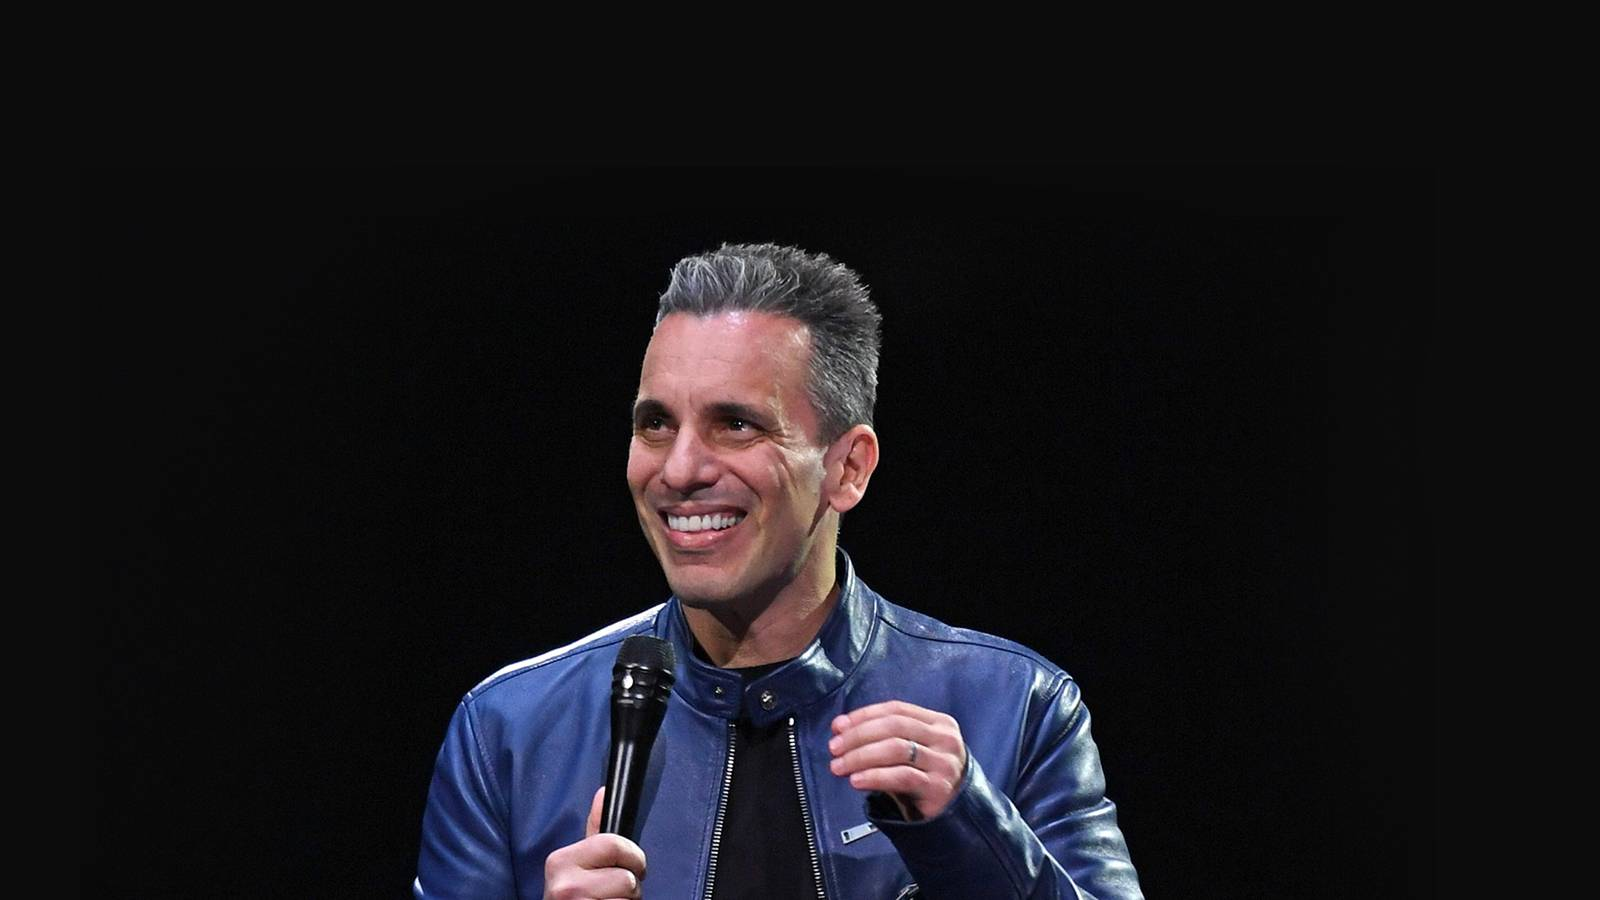 Sebastian Maniscalco (Rescheduled from 3/14/2020, 7/25/2020)